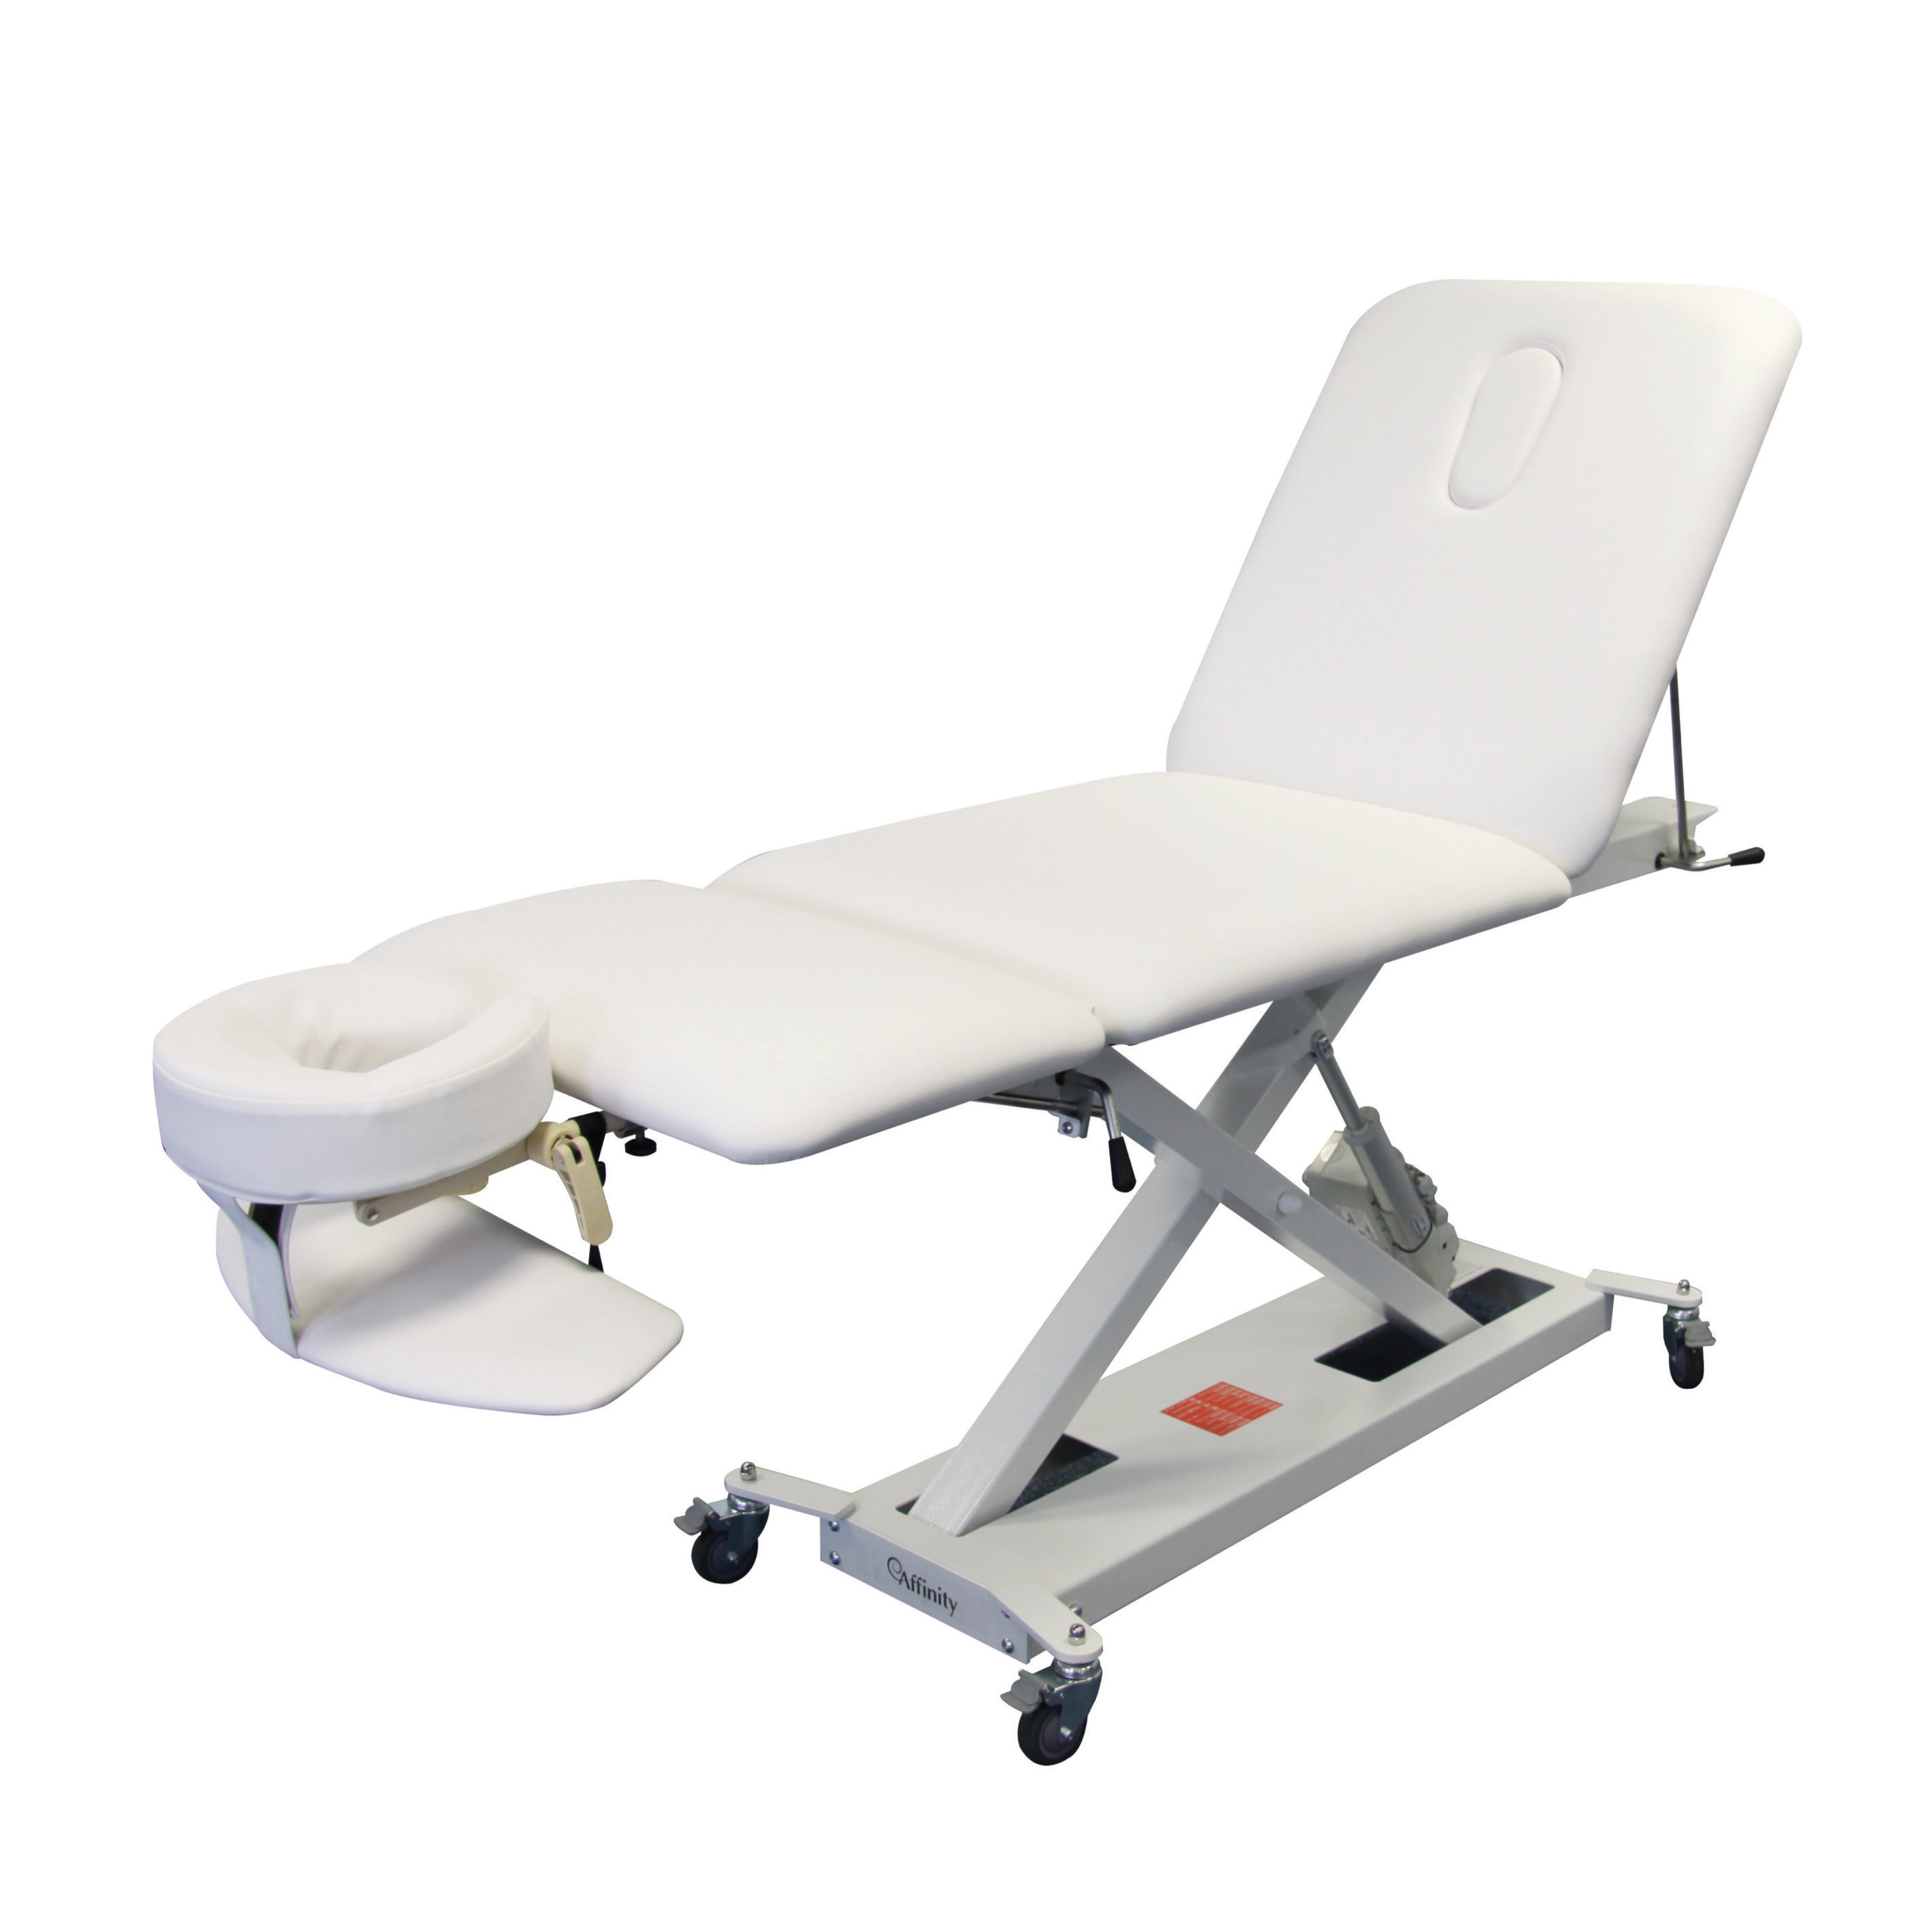 sanyo massage chair teak folding plans affinity sports and beauty pro 3 section electric